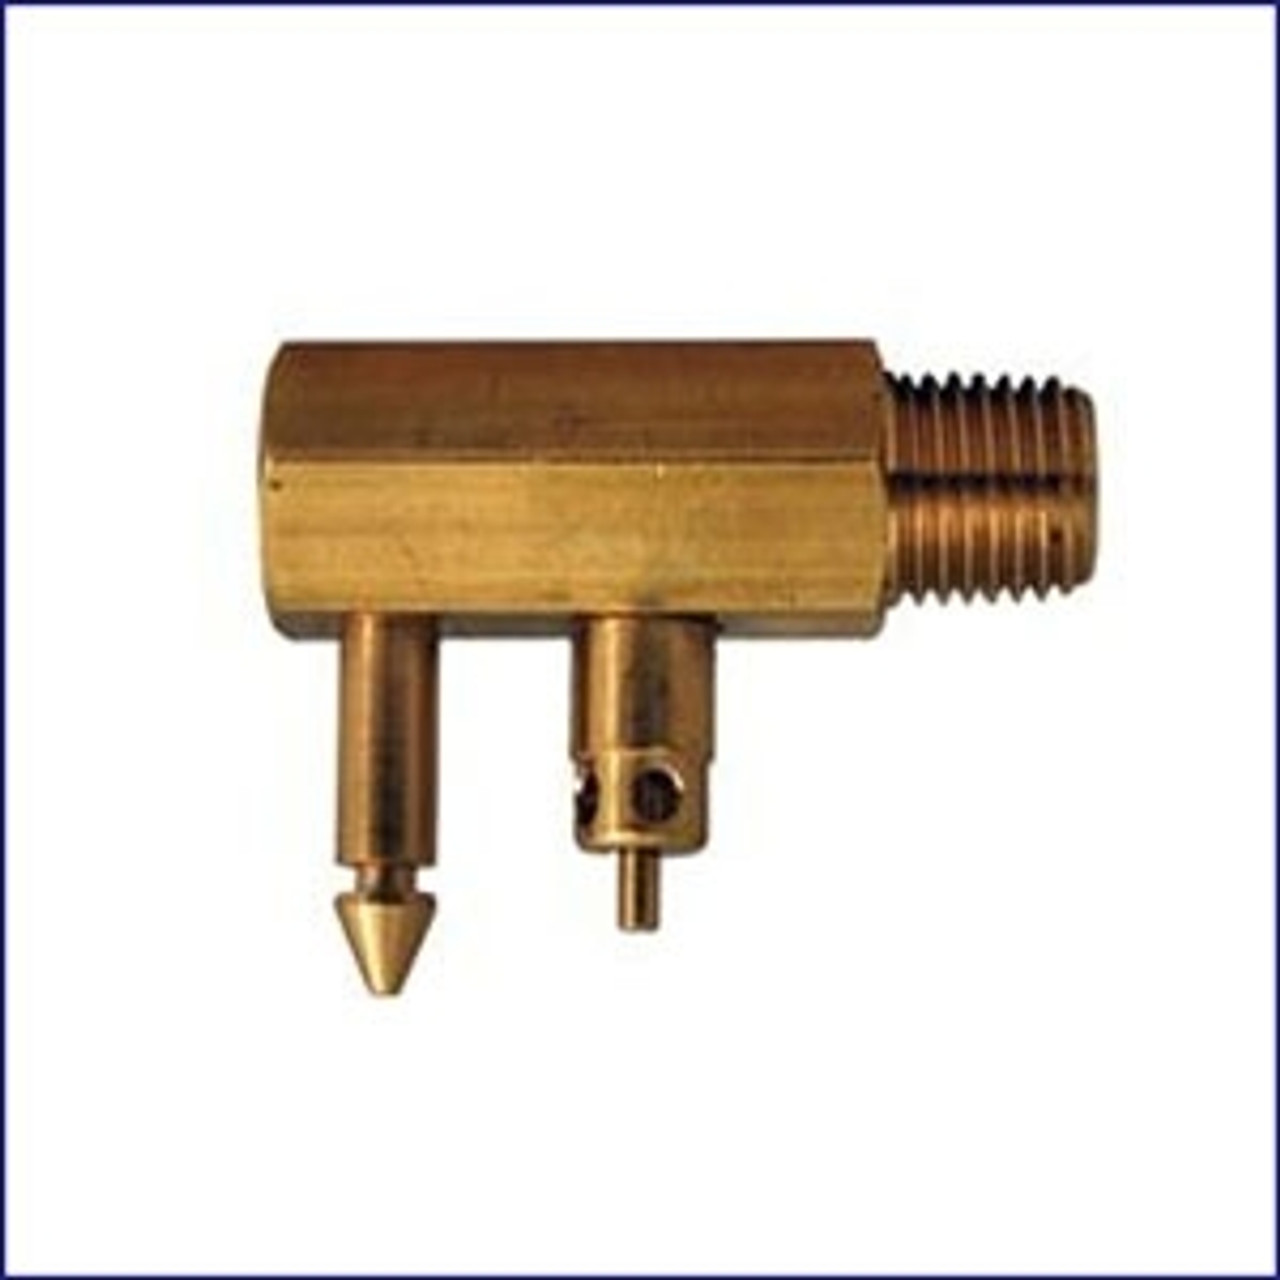 Atwood 8896LP6 Quick-Connect Fuel Hose Fitting